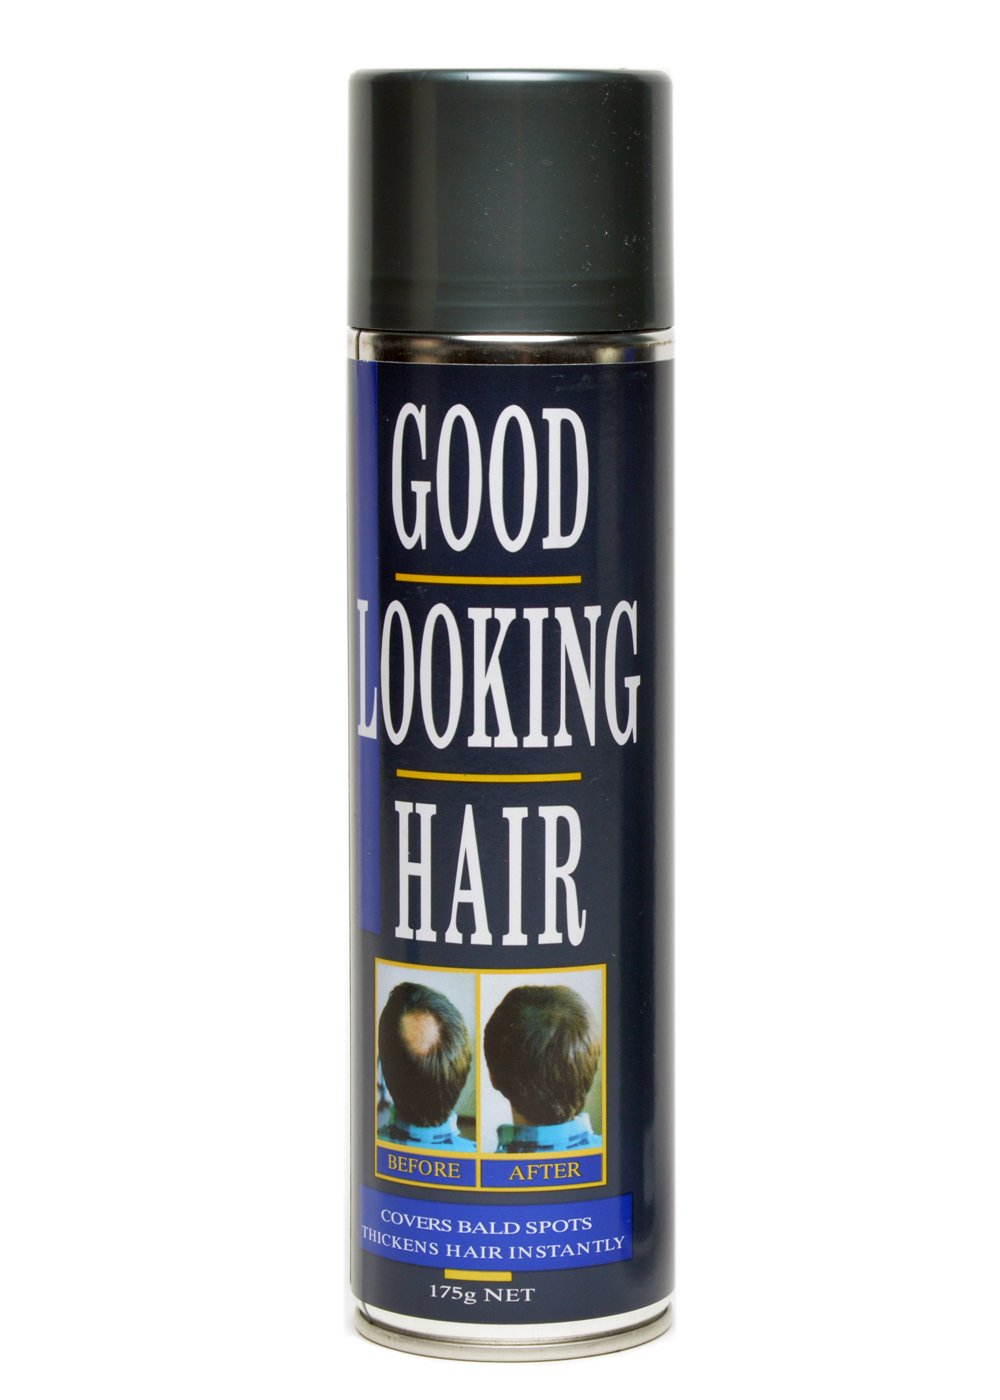 Good Looking Hair Spray (Medium Brown)